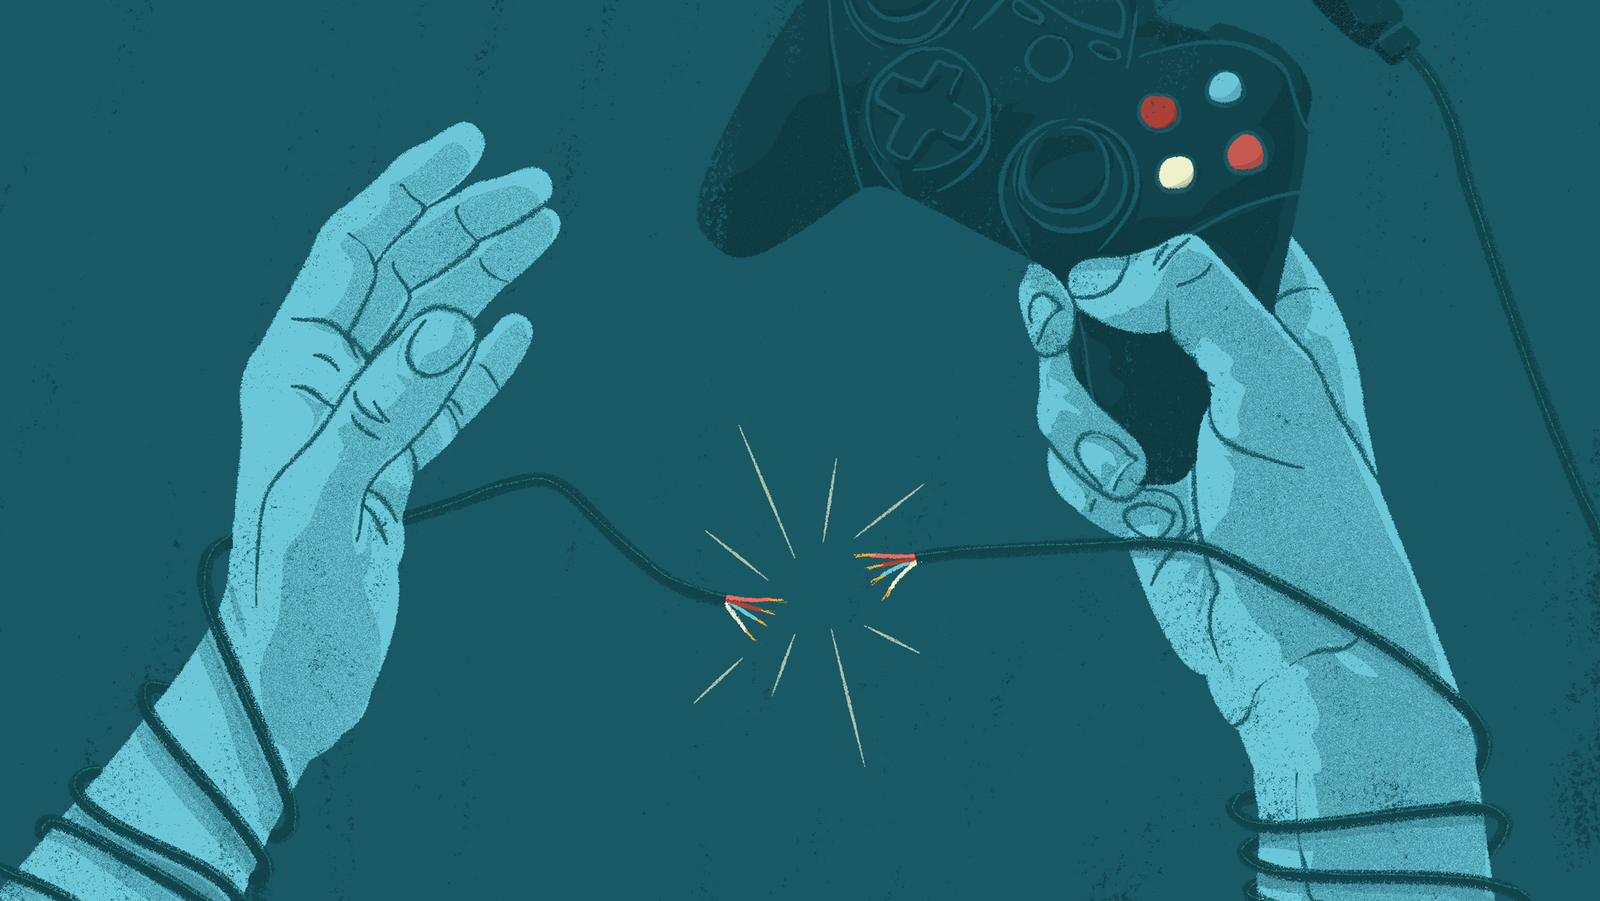 Why One Professor Believes Video Game And Tech Addiction Is A Myth